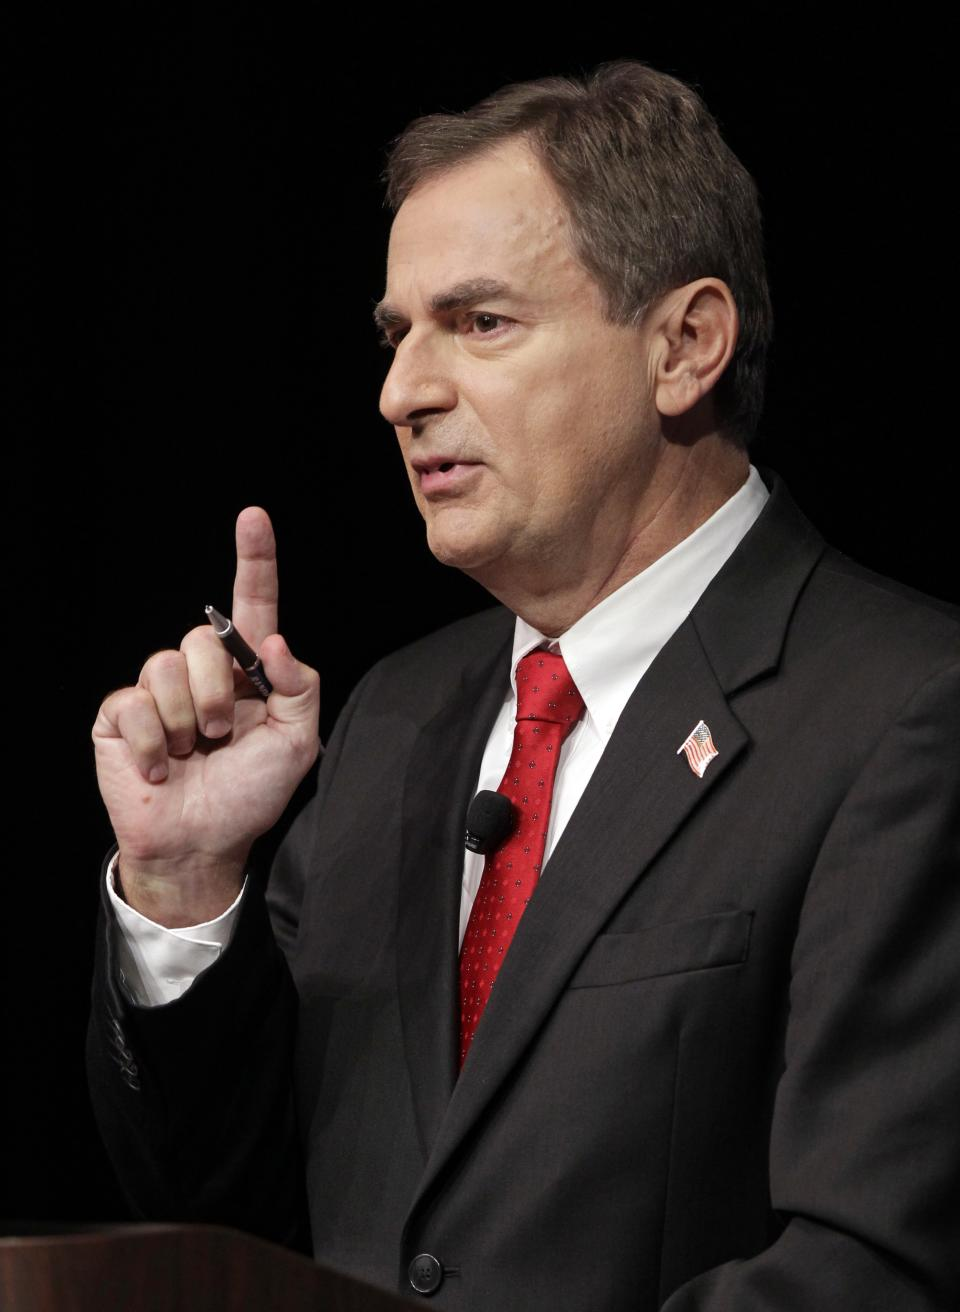 Republican Richard Mourdock, candidate for Indiana's U.S. Senate seat,  participates in a debate with Democrat Joe Donnelly  and Libertarian Andrew Horning in a debate in New Albany, Ind., Tuesday, Oct. 23, 2012. (AP Photo/Michael Conroy)